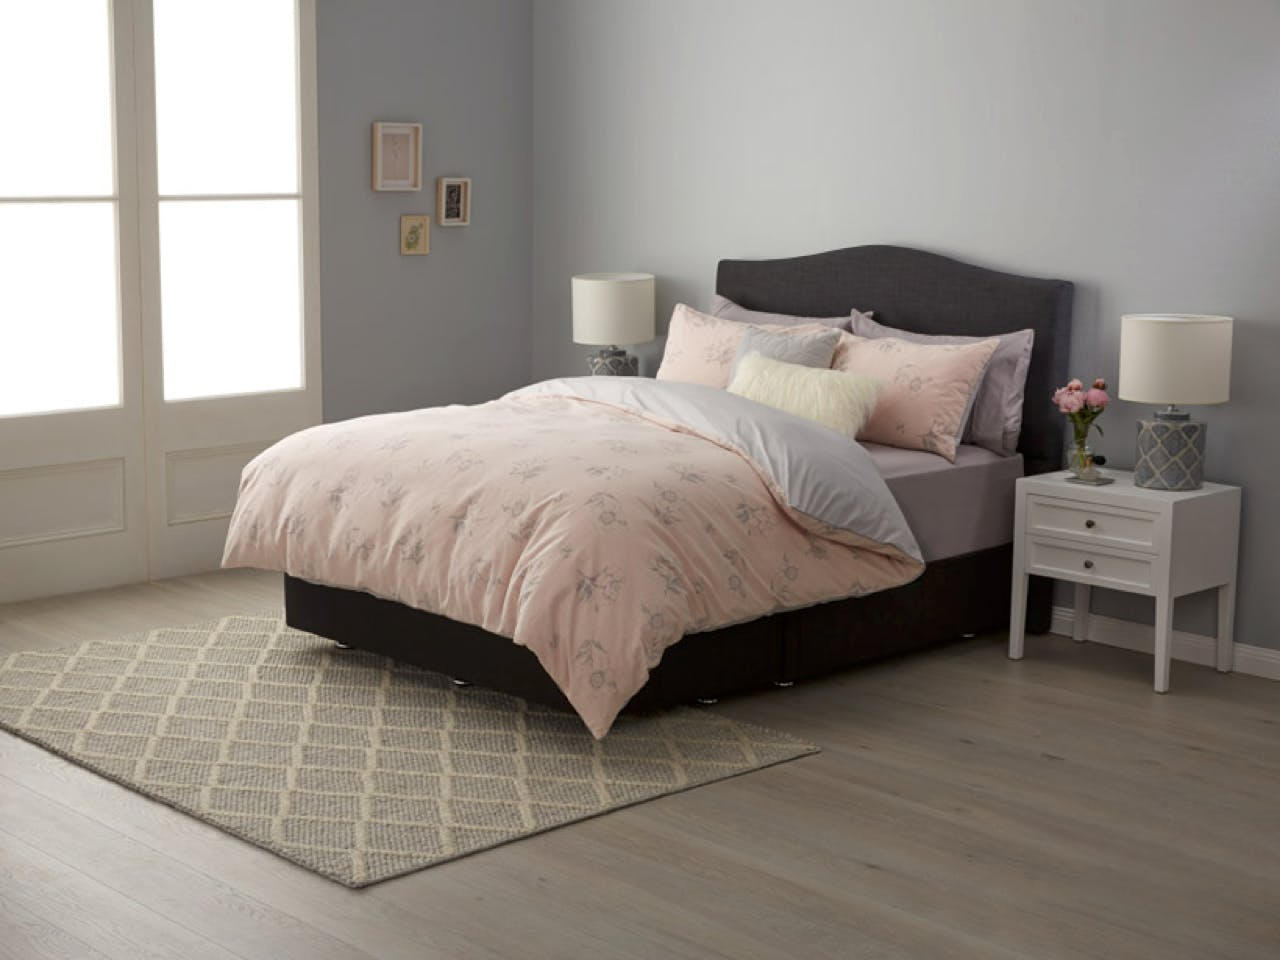 plus alaskan pedic ideas mattresses king windown best use your luxury bed for design simple treatment table temperpedic beds modern tempur and slumberland coffee bedroom